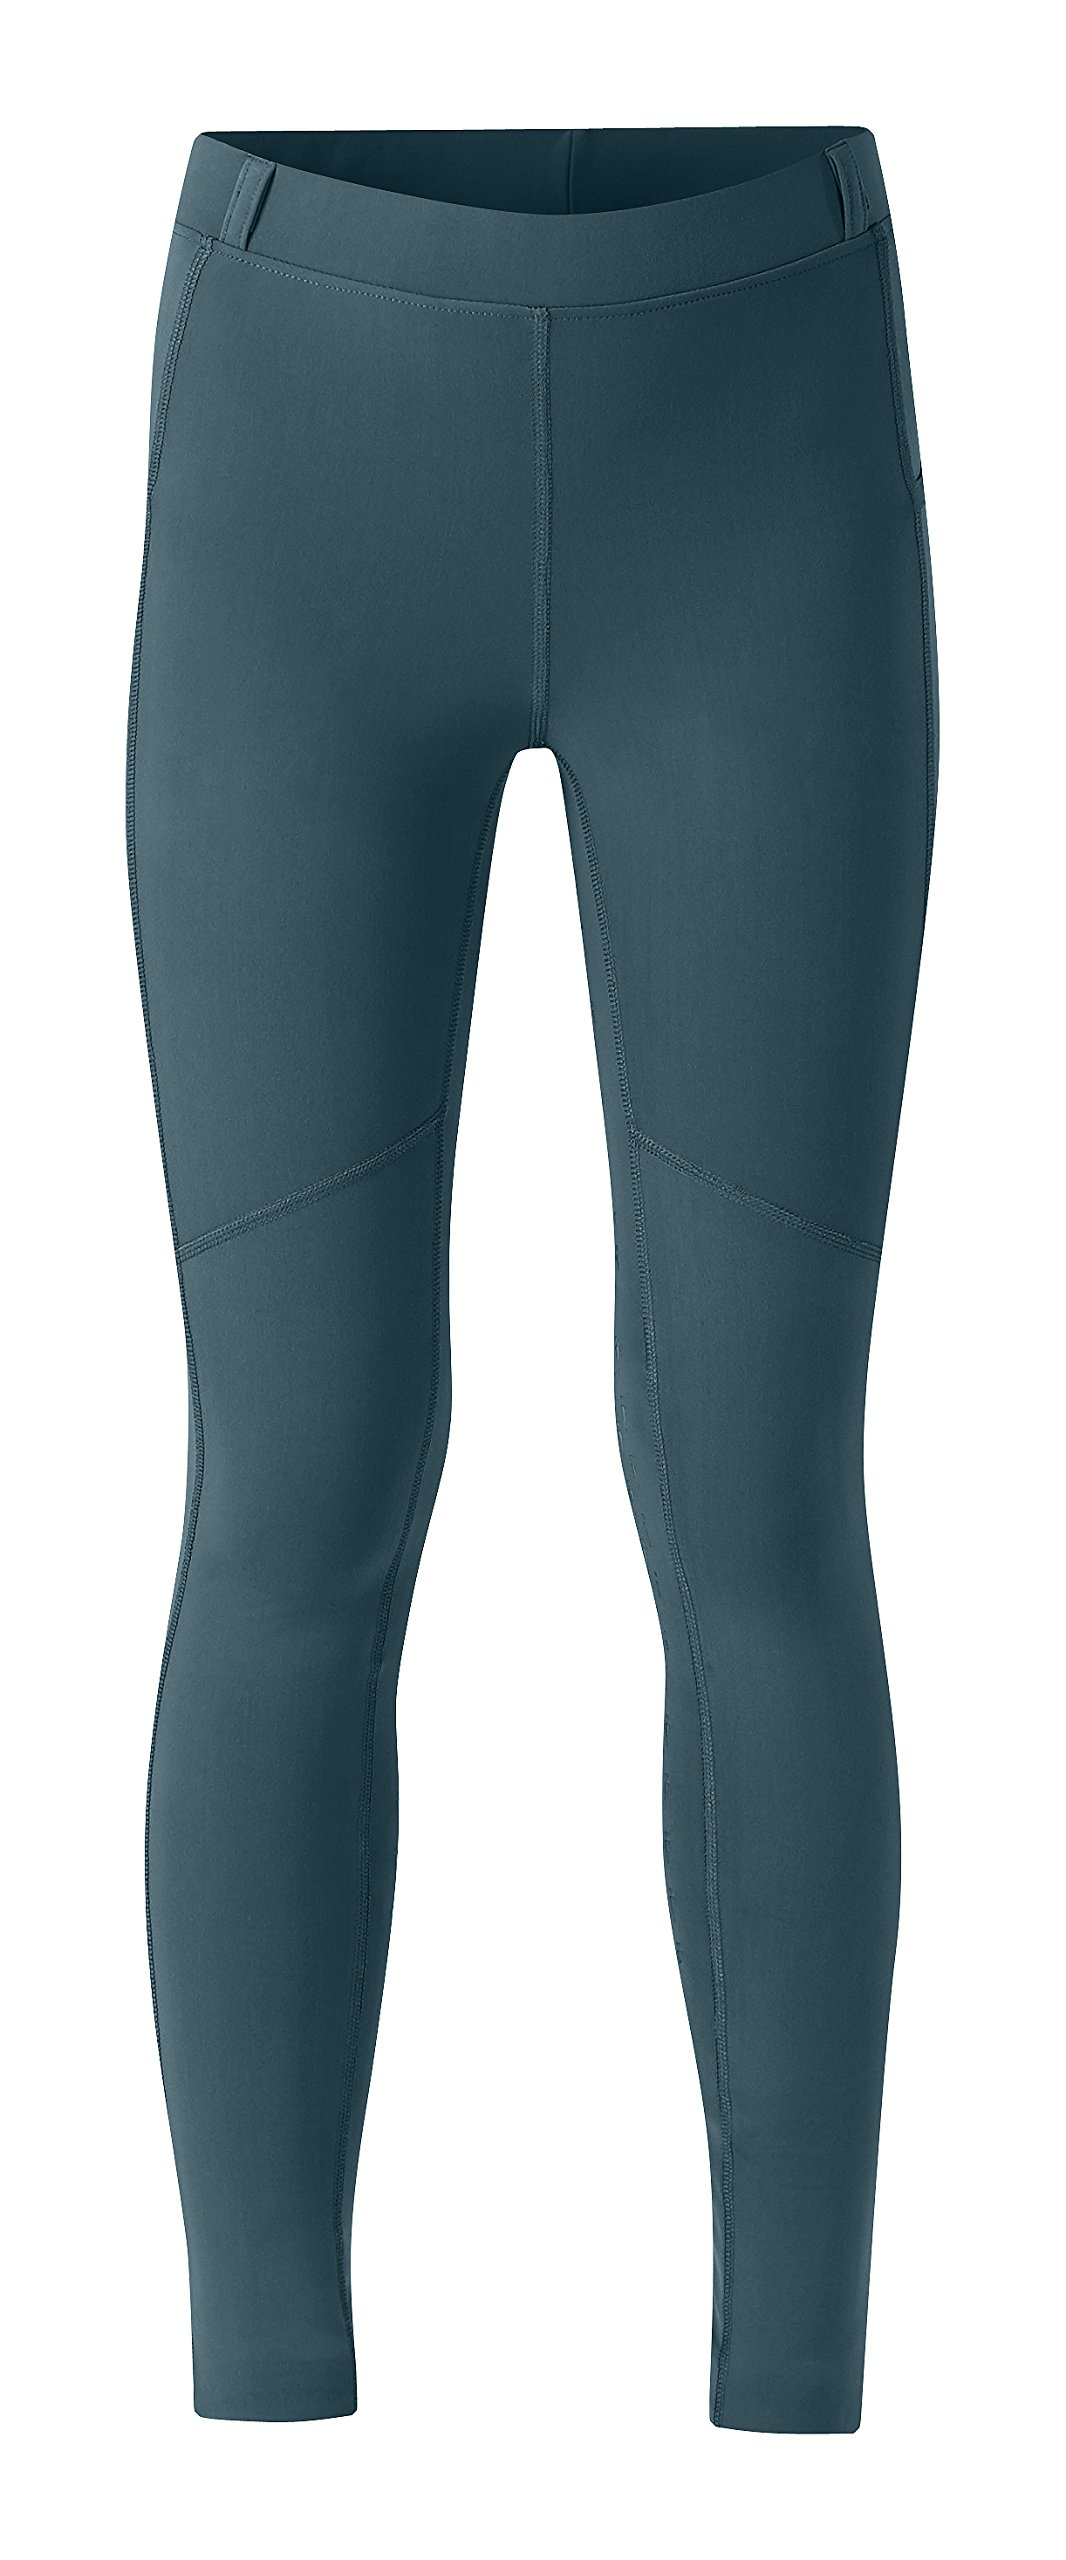 Kerrits Kids Ice Fil Tight Teal Size: Large